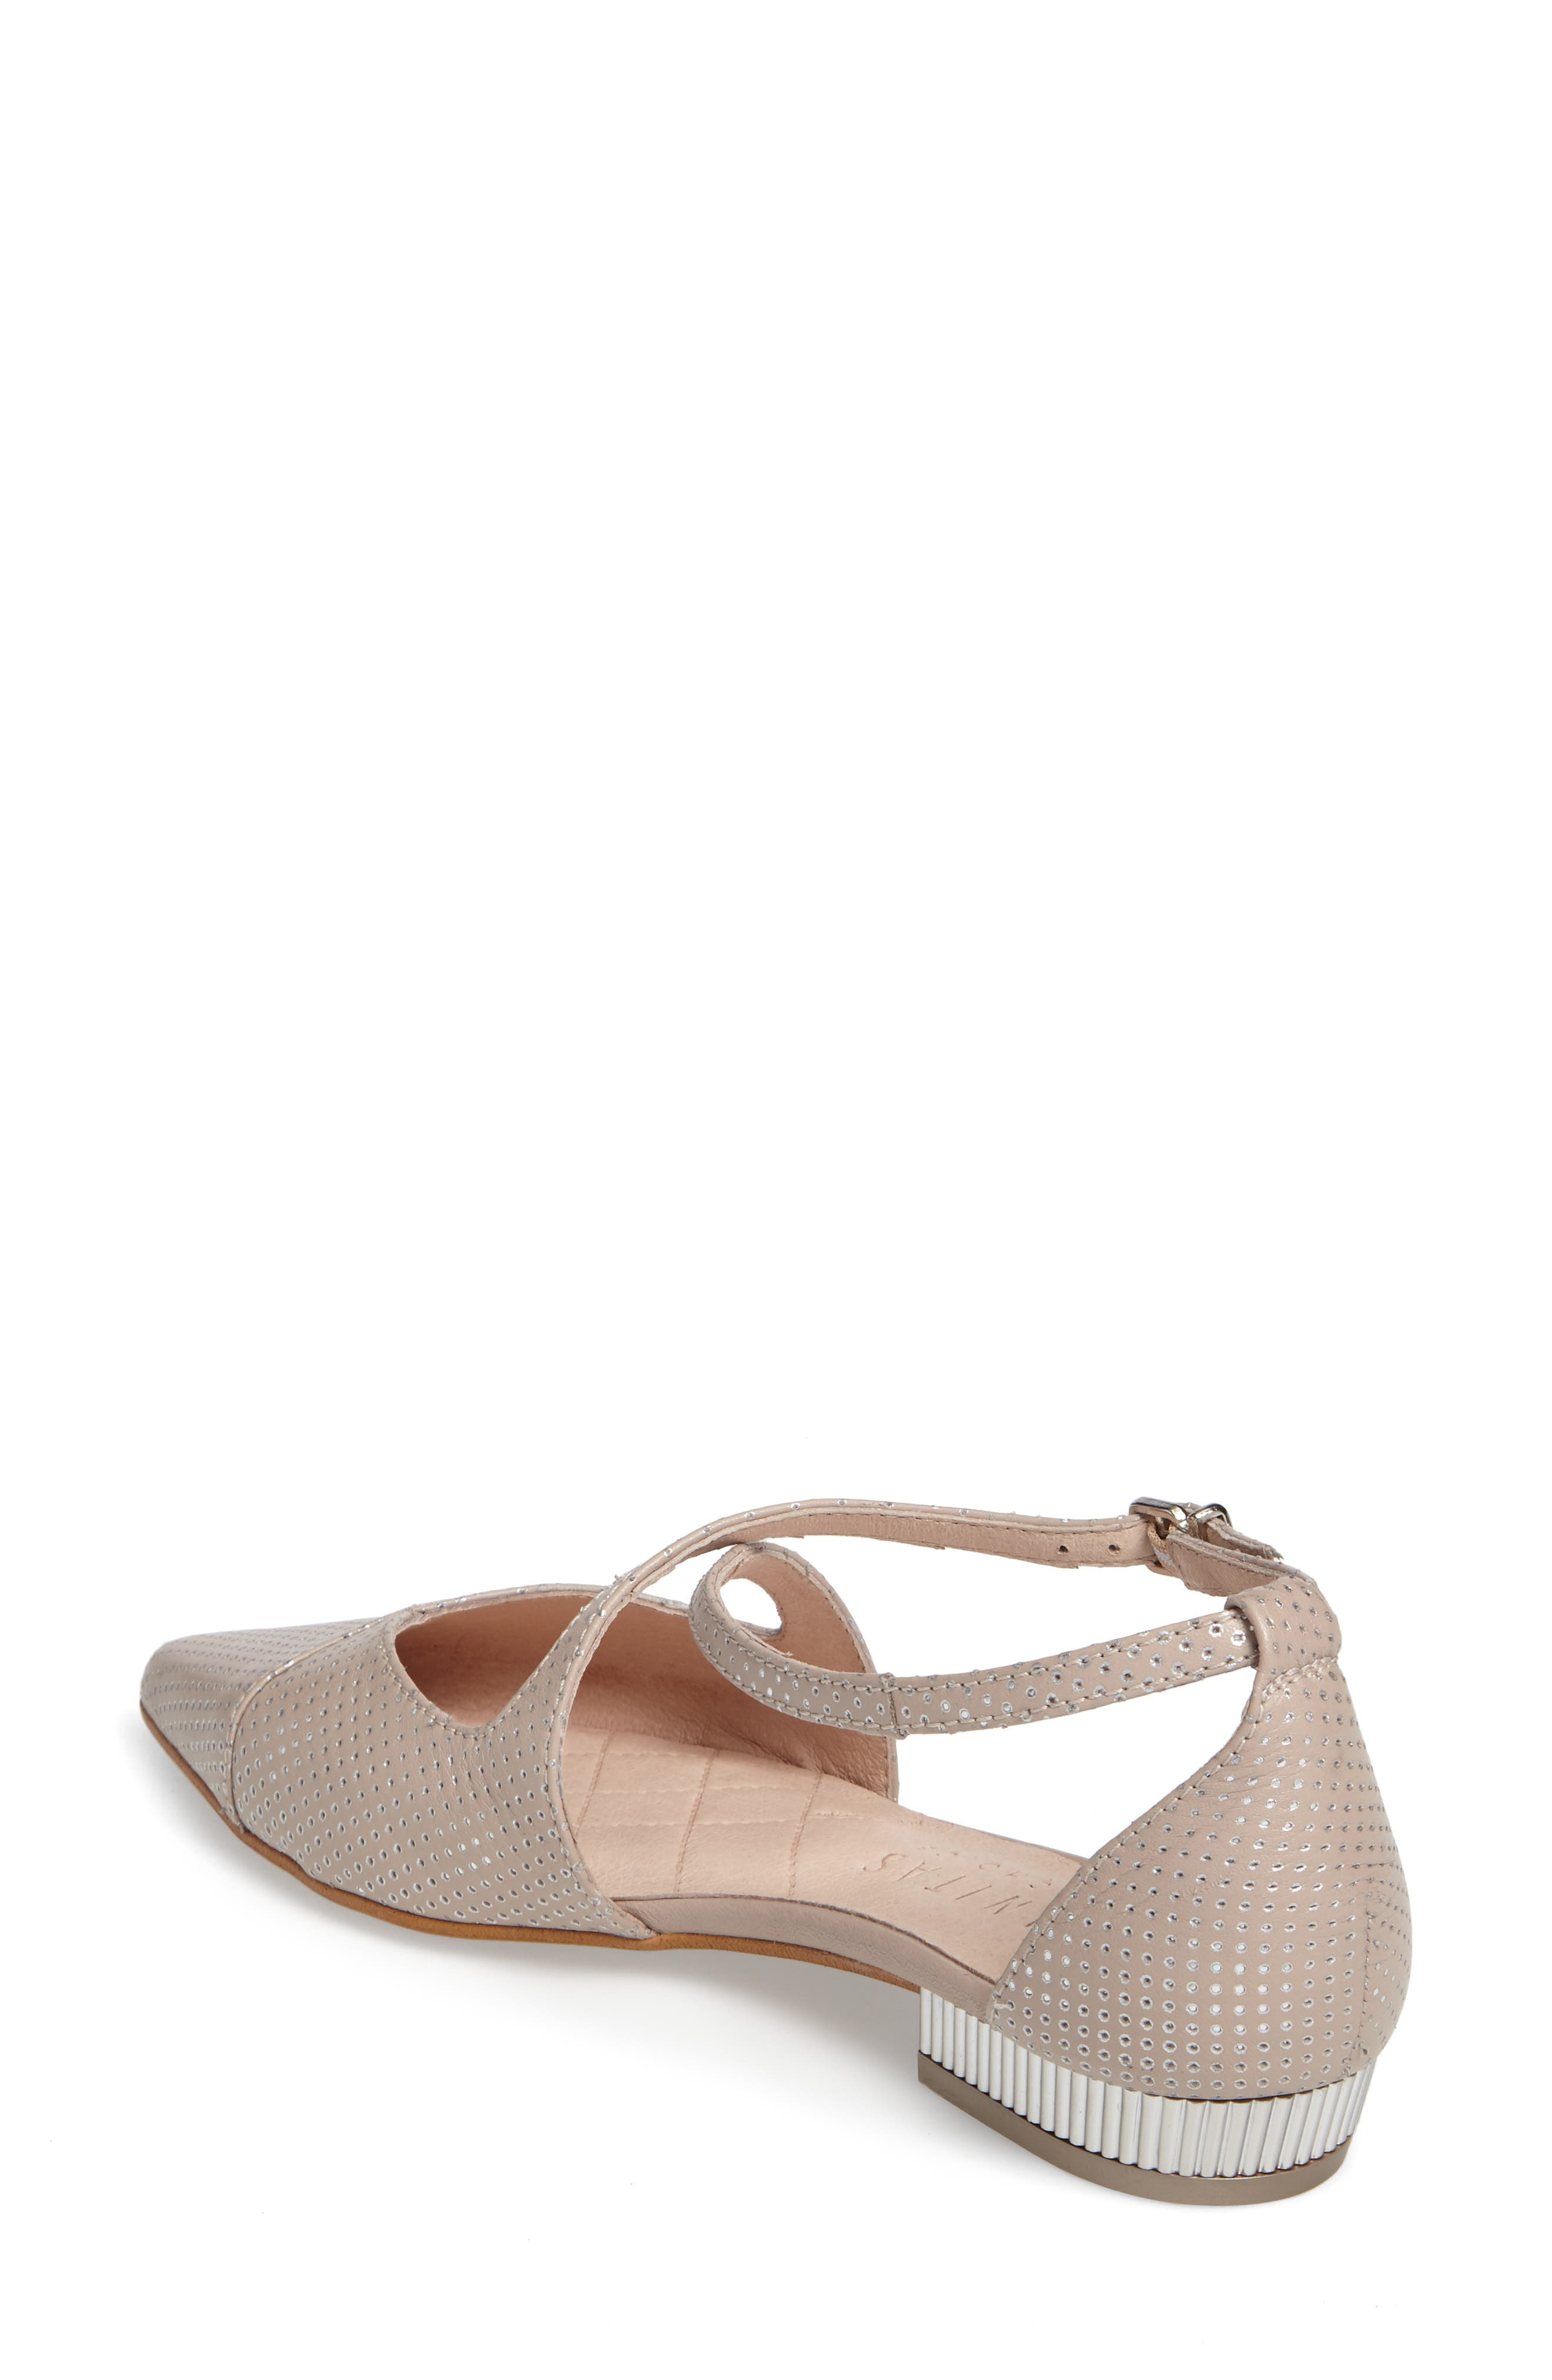 April Perforated Pointy Toe Flat,                             Alternate thumbnail 2, color,                             250